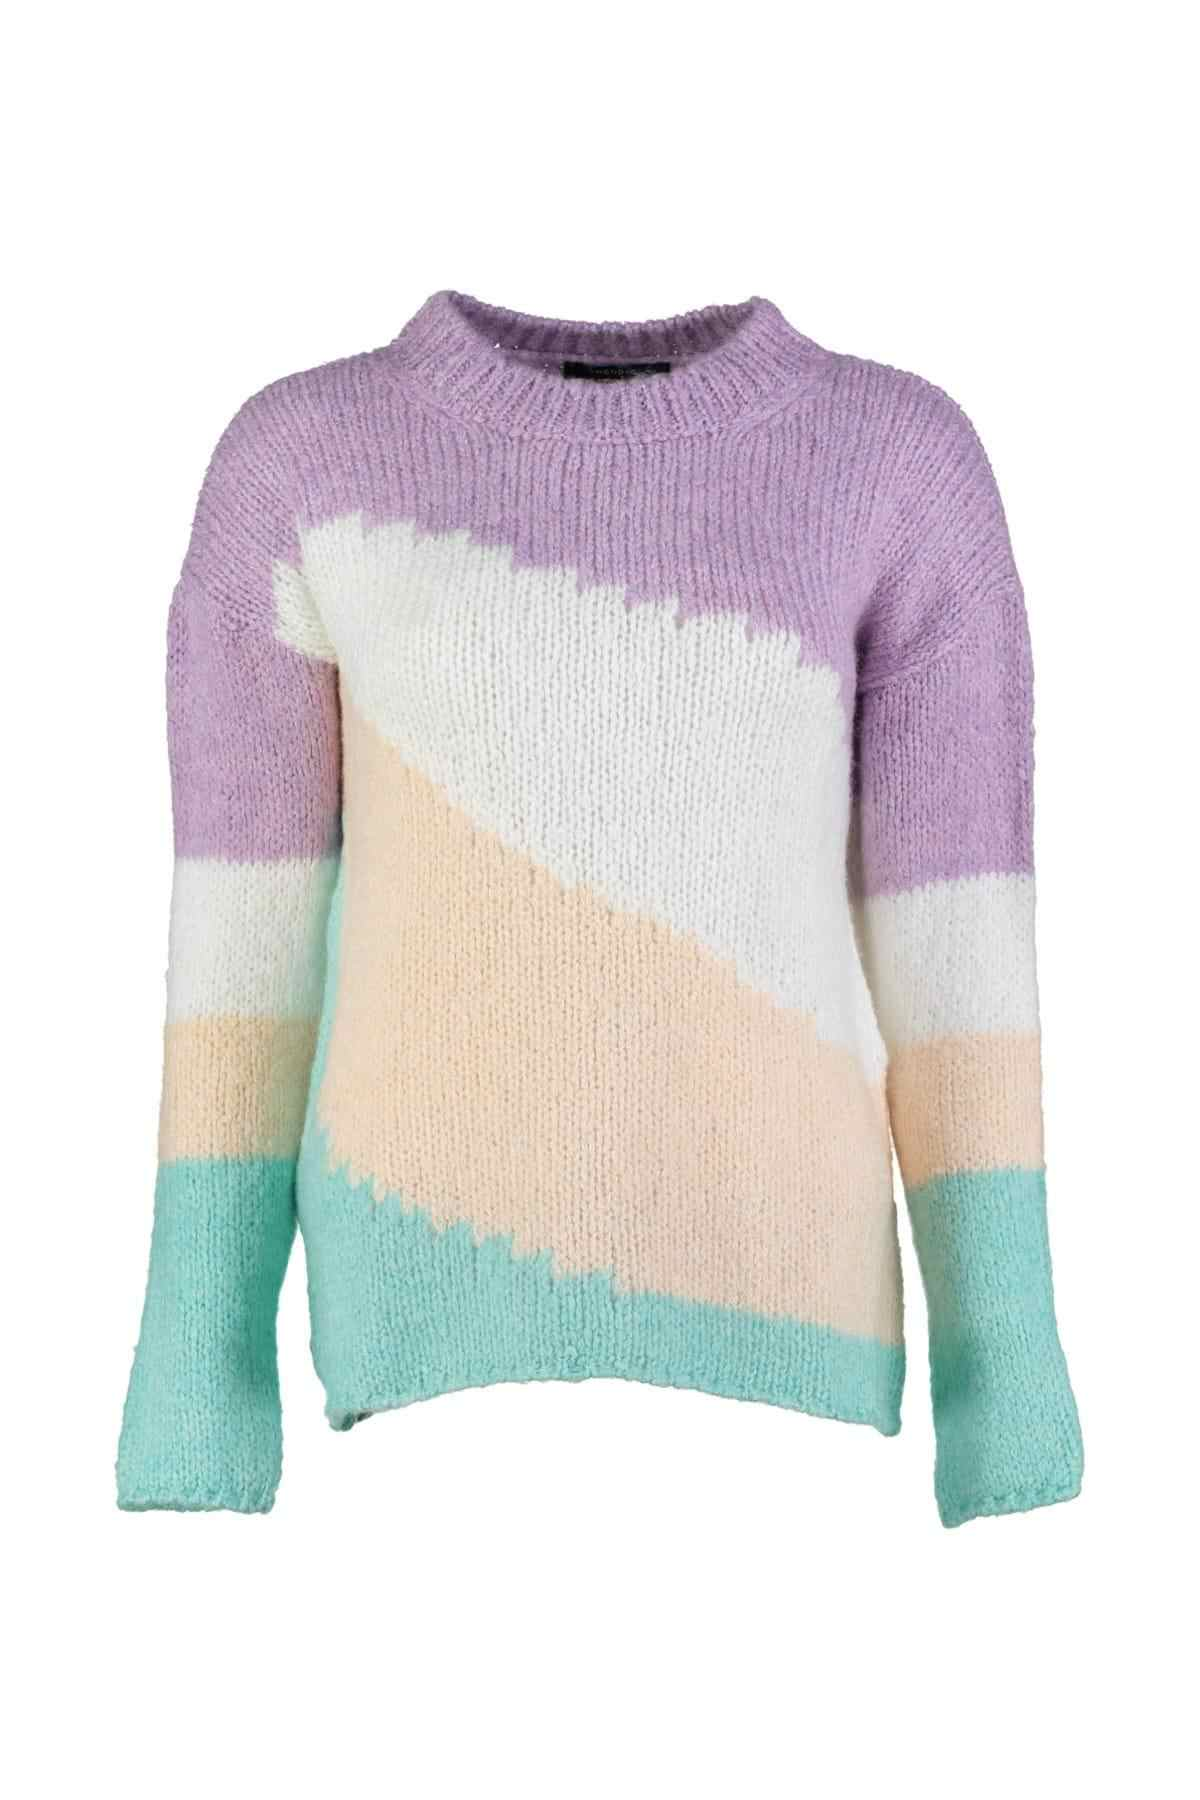 Trendyol Mavi Colorblock Sweater Sweater TWOAW20ZA0032